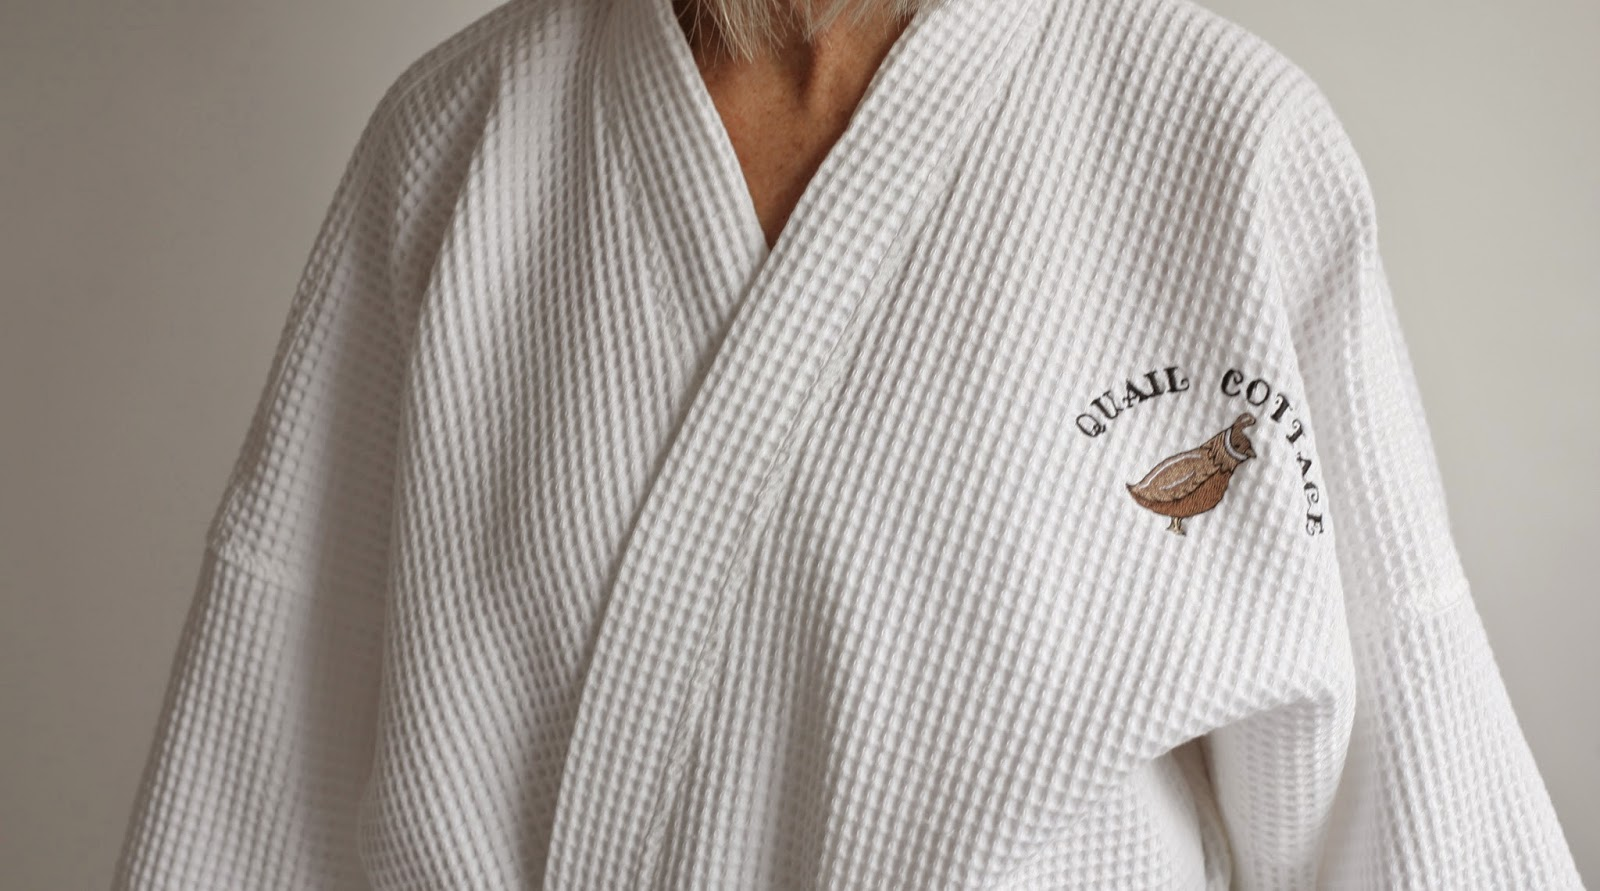 https://www.qcamenities.ca/catalog/Bathrobes_4.cfm